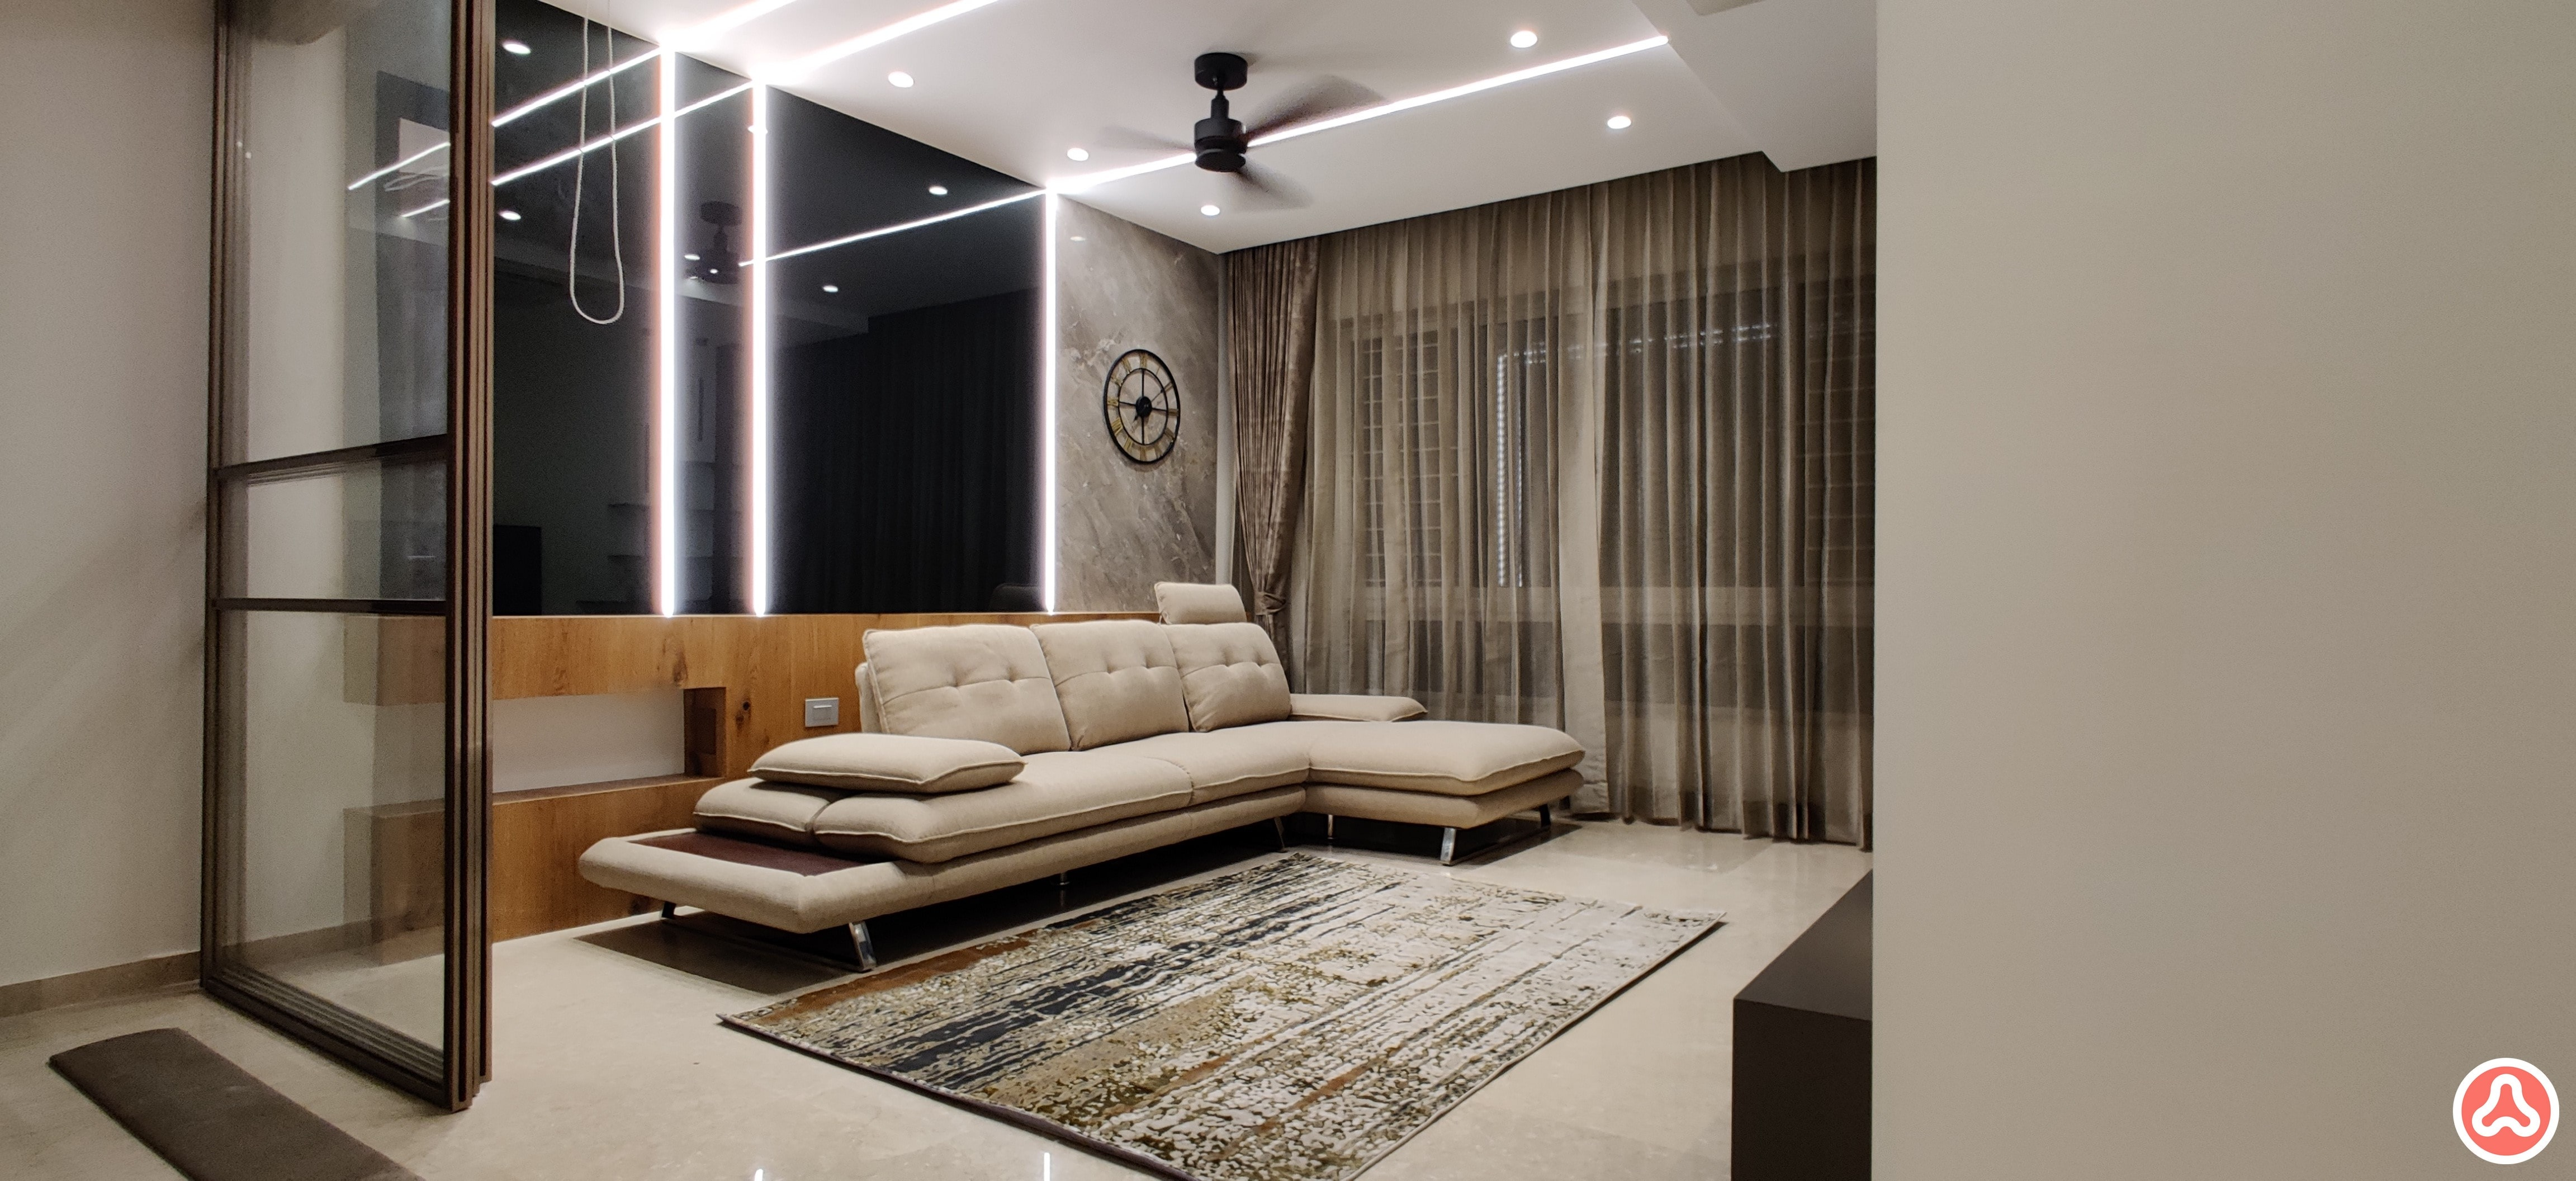 room designed in lacquer glass and light strip